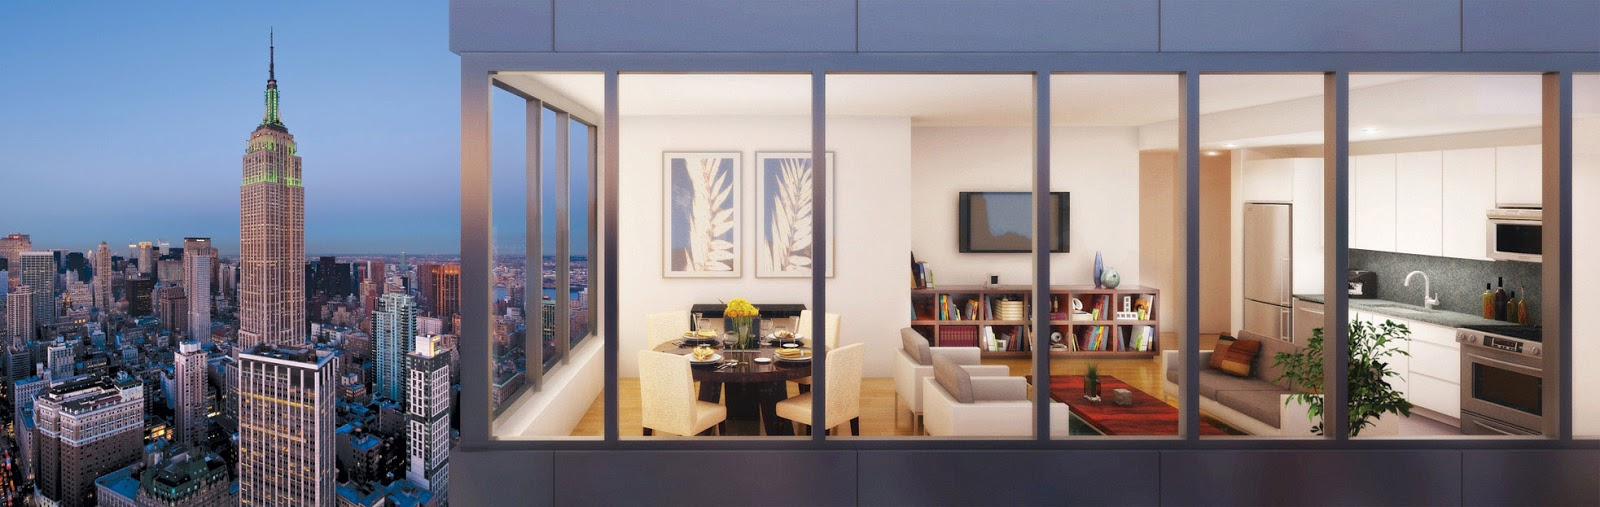 List Of Rent Stabilized Apartments Nyc